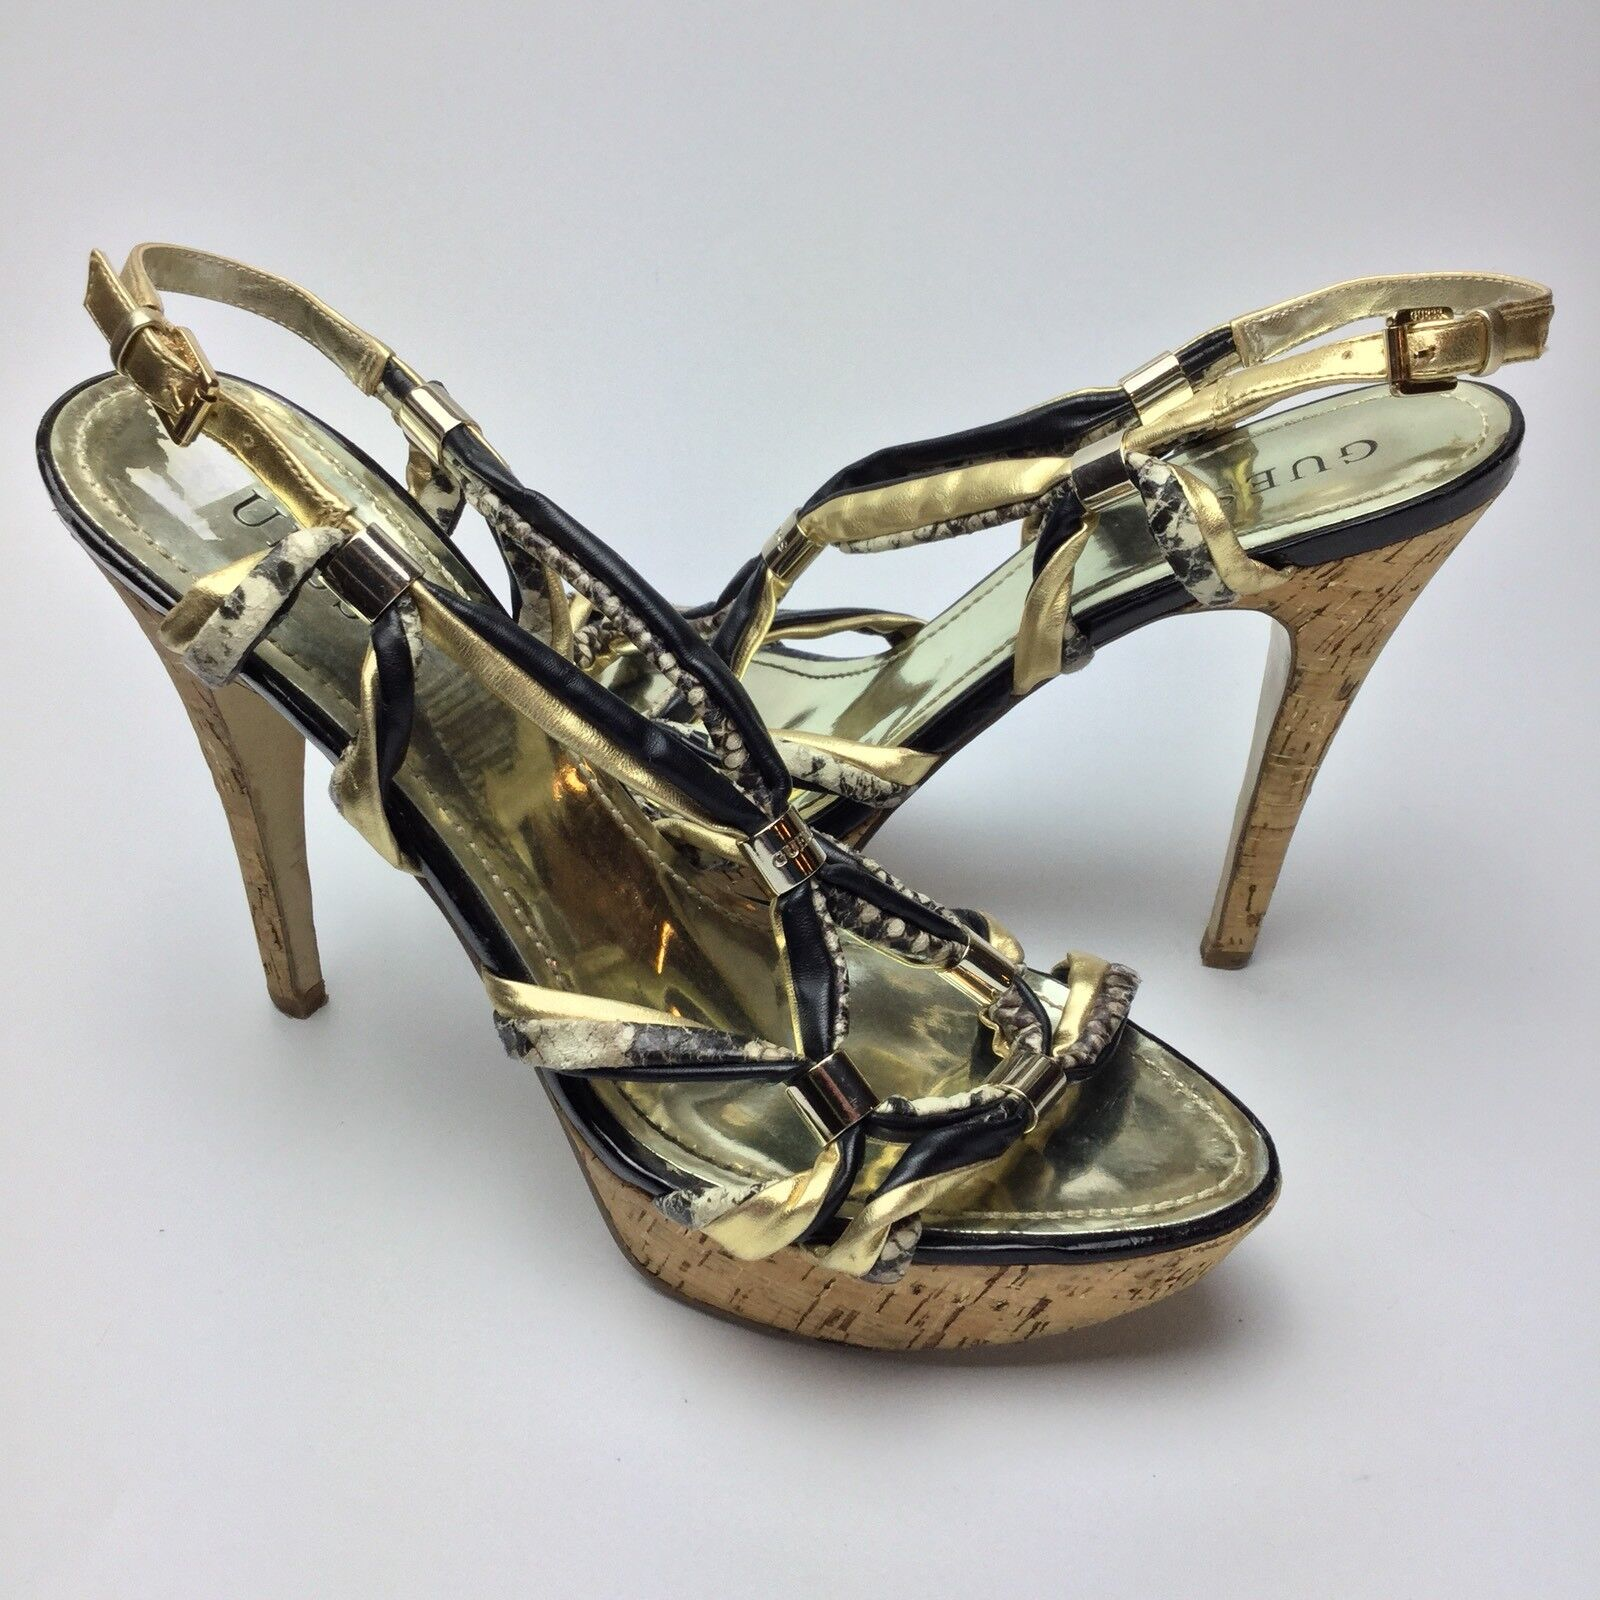 GUESS Knotted2 Platform Sandals Size 10M Pumps High Heels Cork Heel Strappy